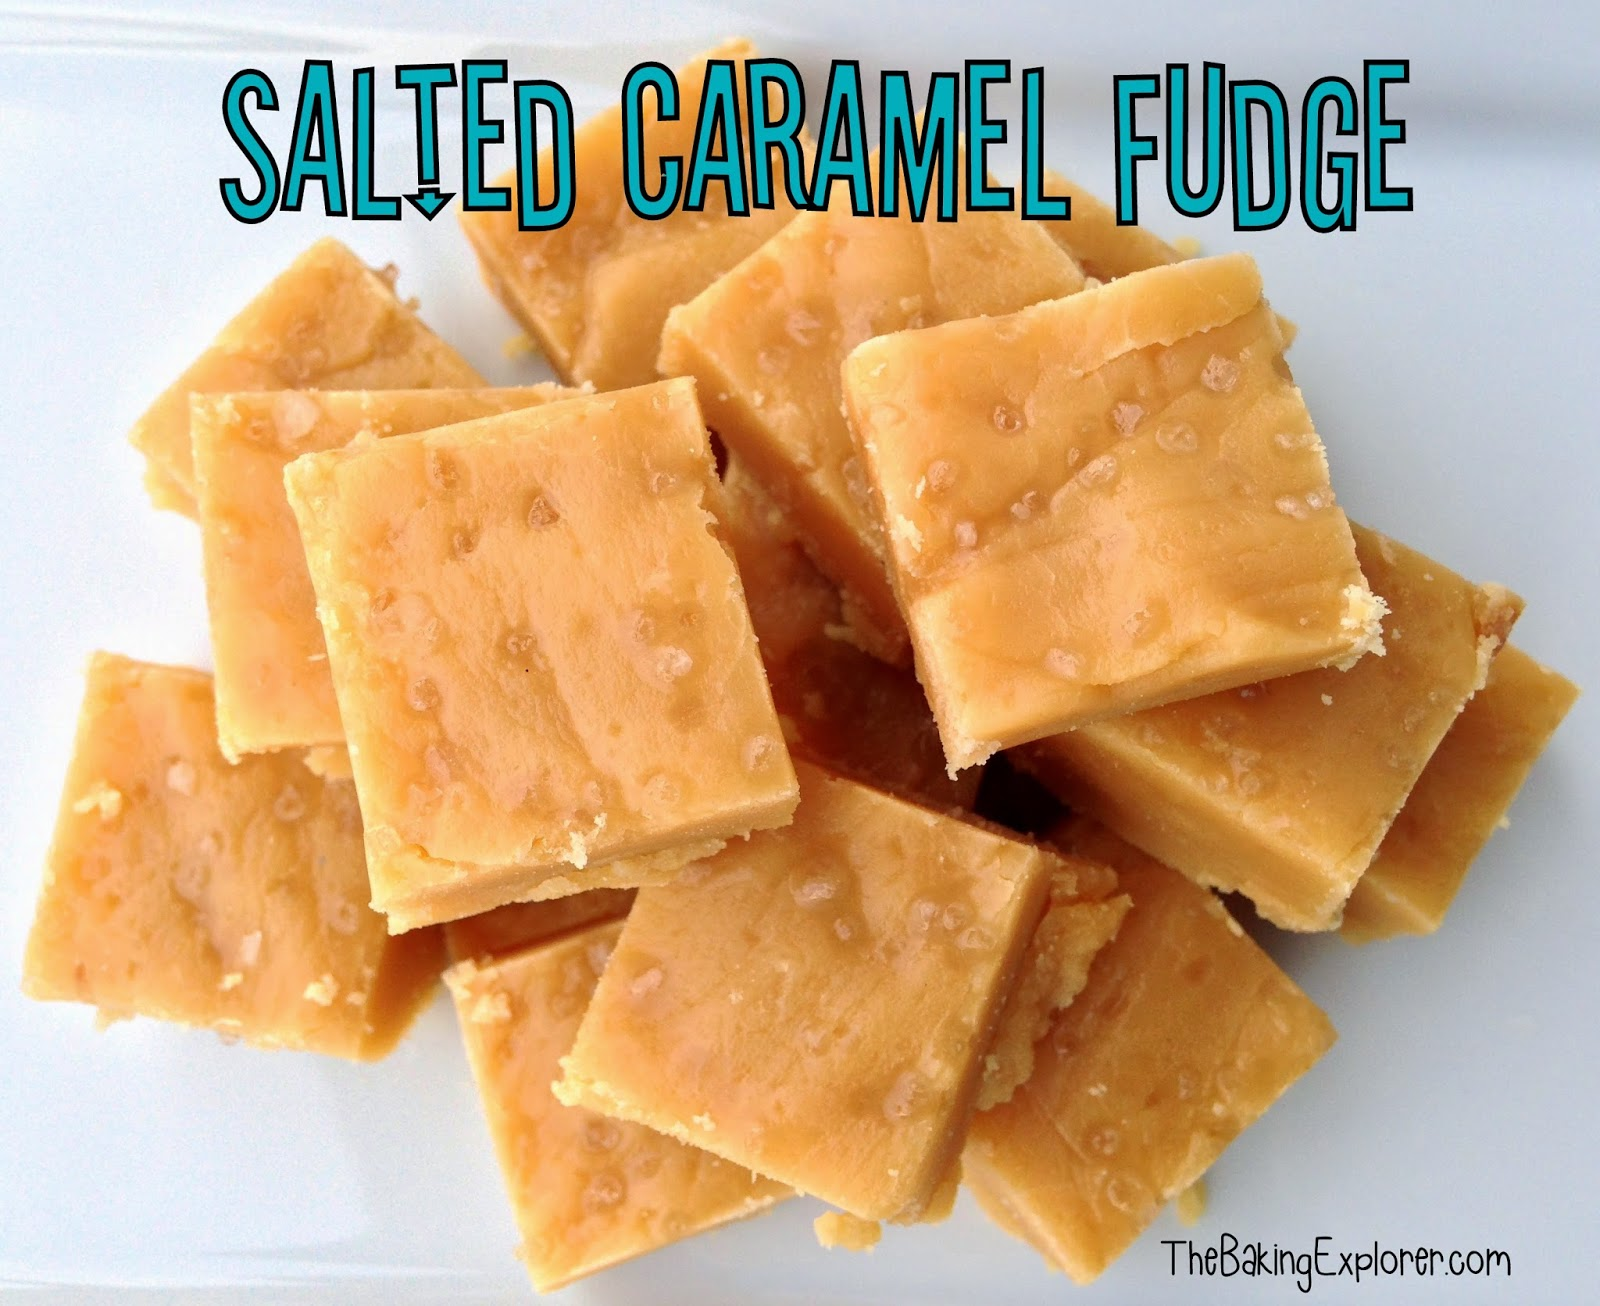 The Baking Explorer: Salted Caramel Fudge